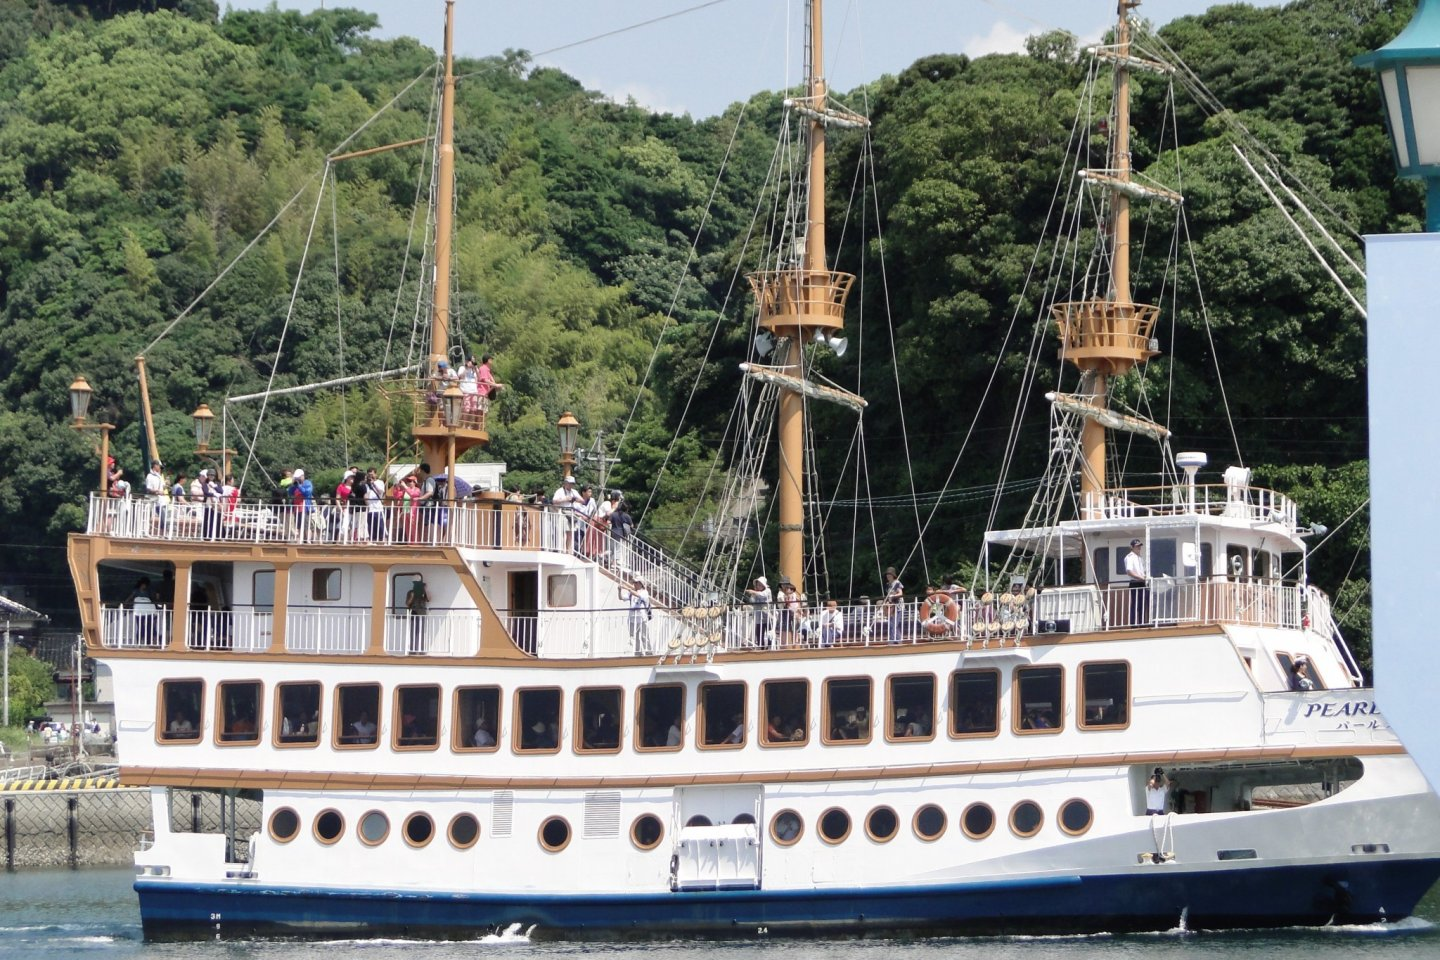 The Pearl Queen takes visitors on tours of Kujukushima National Park